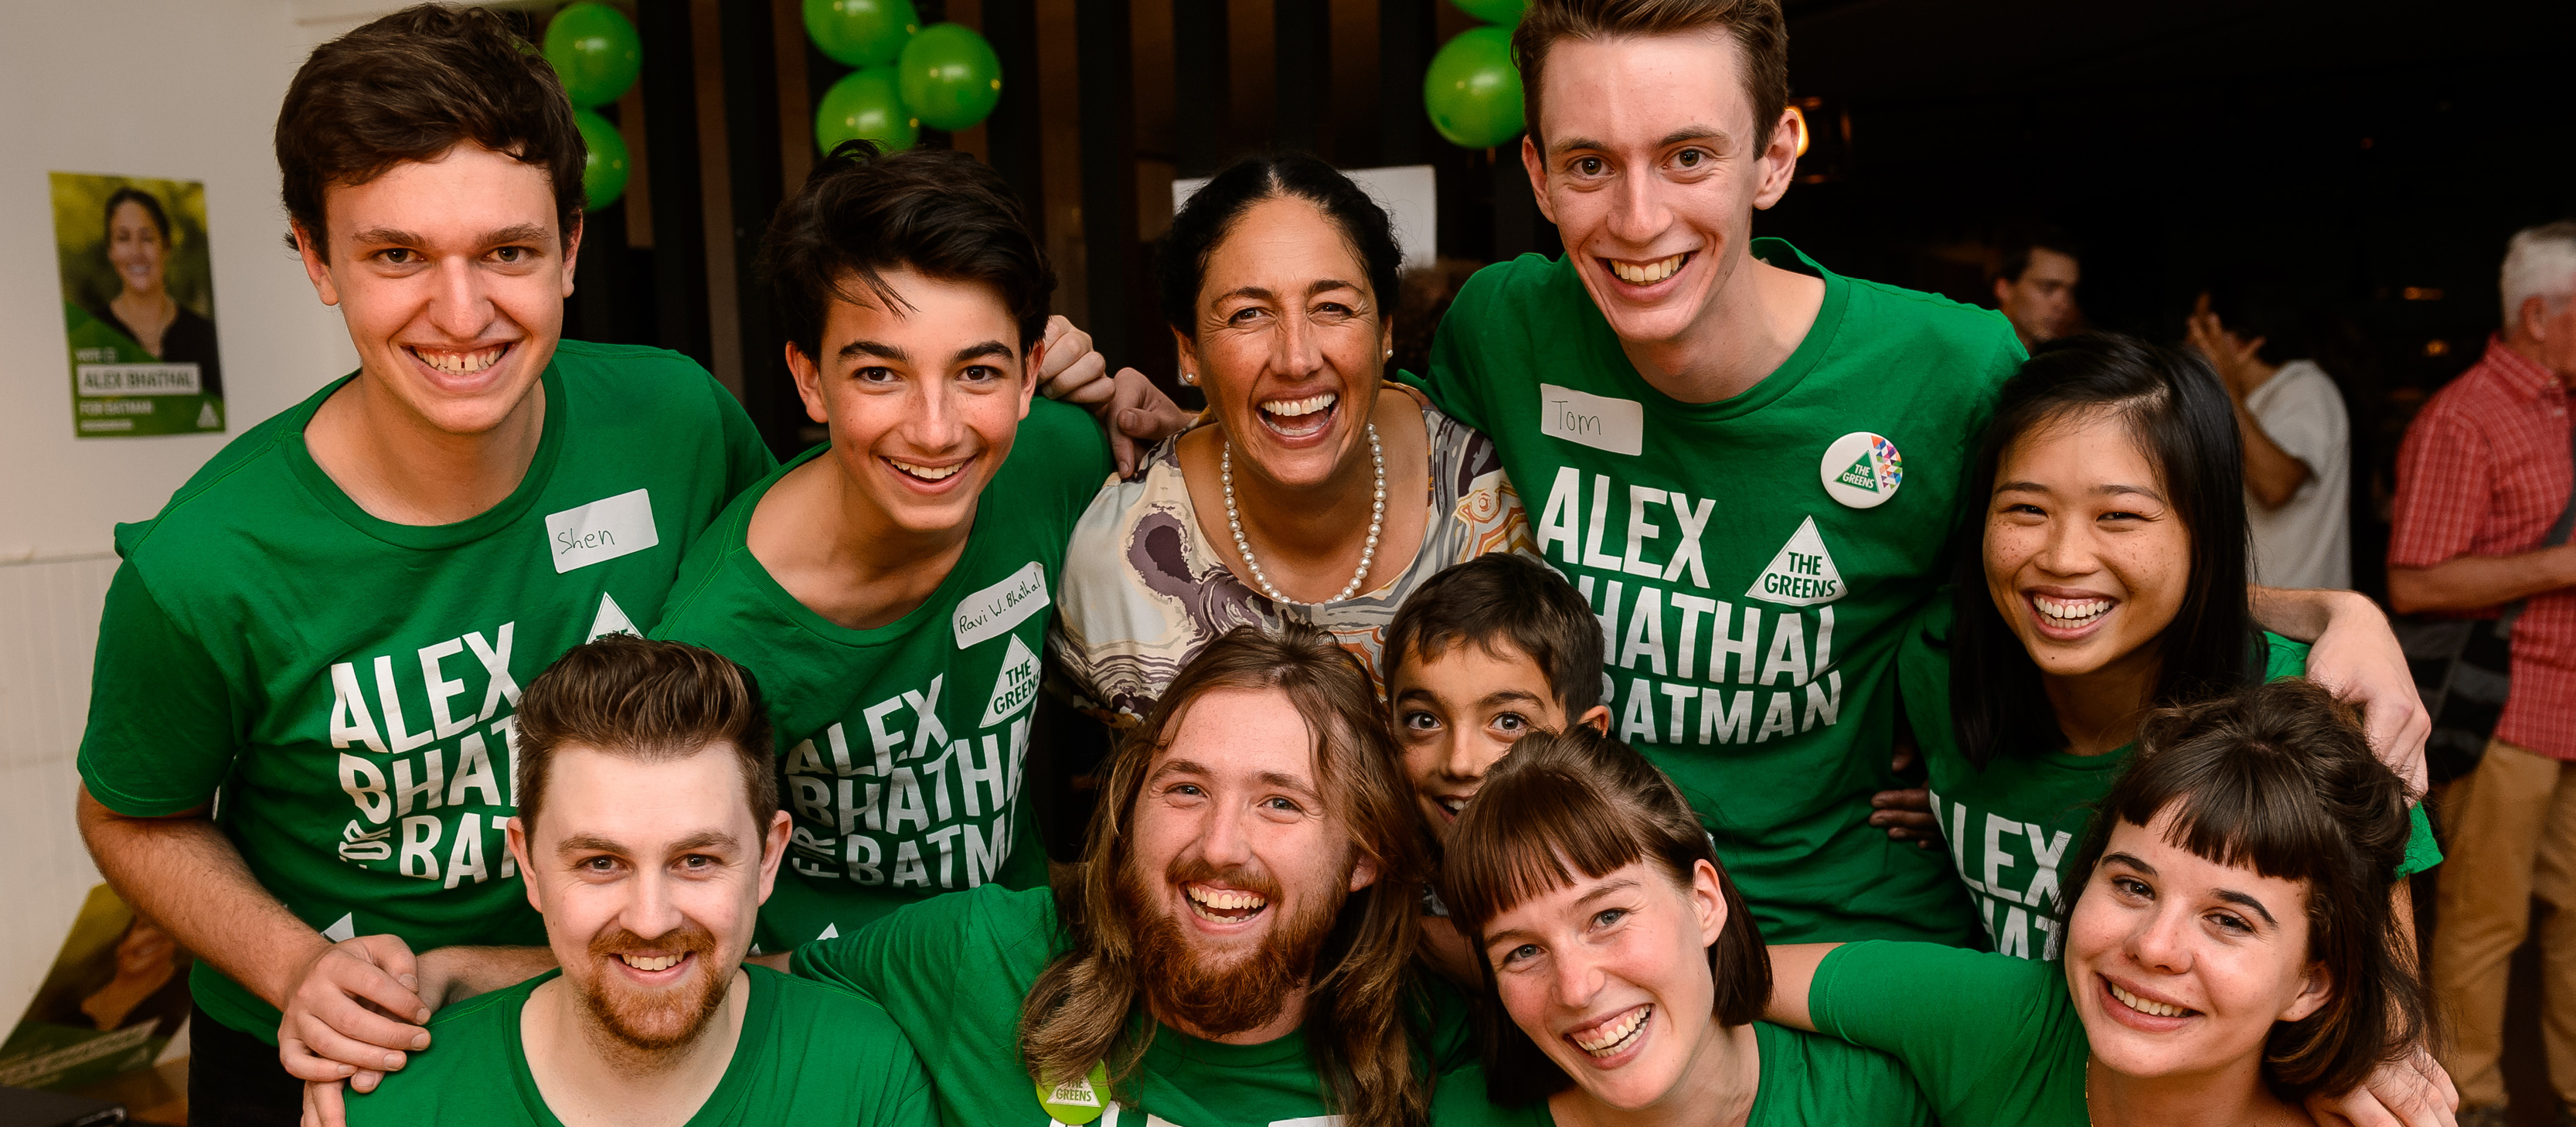 Alex Bhathal with volunteers